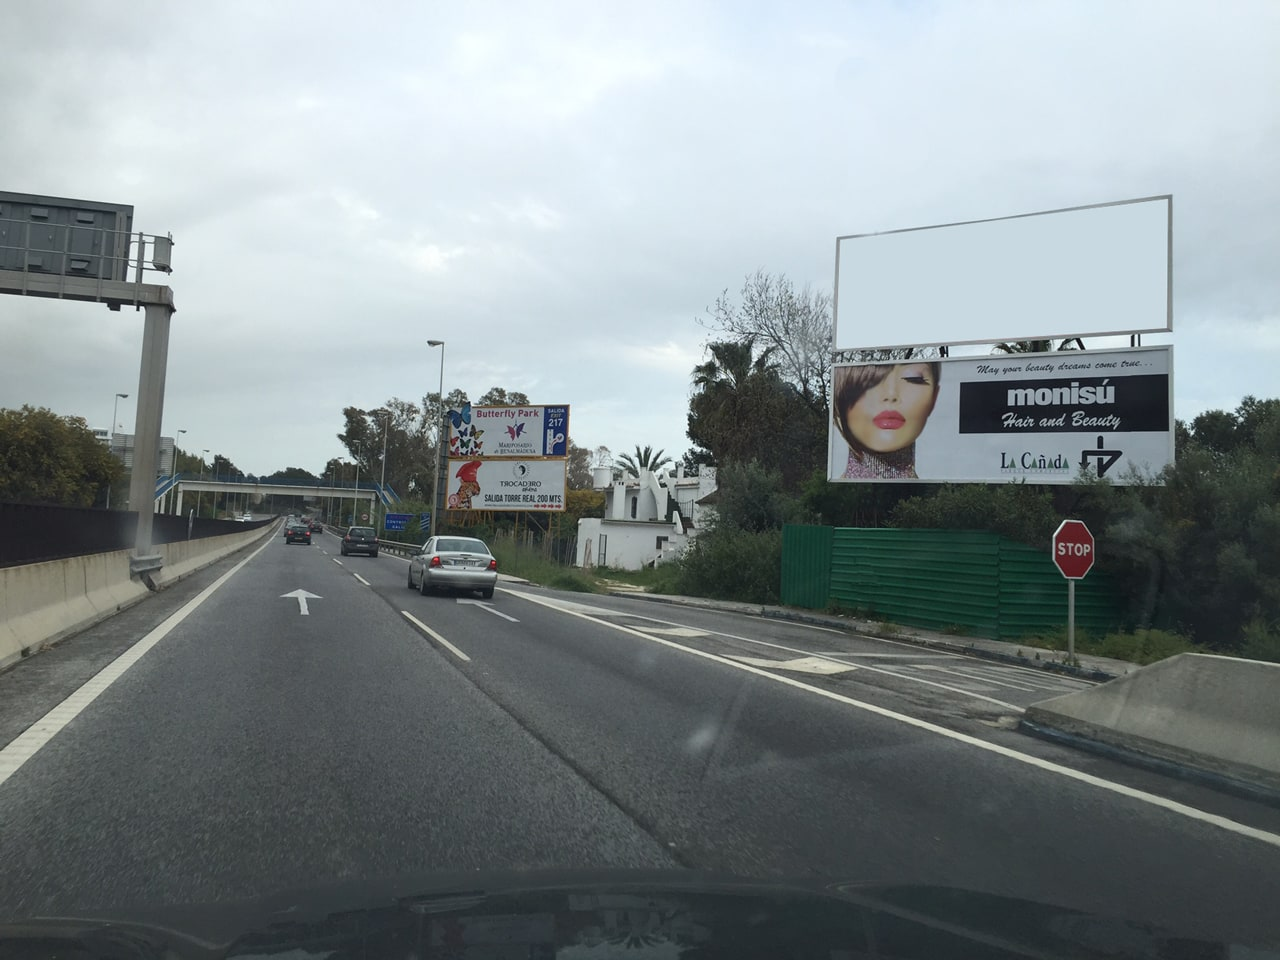 Advertising billboard design and rent for Monisú Hair and Beauty